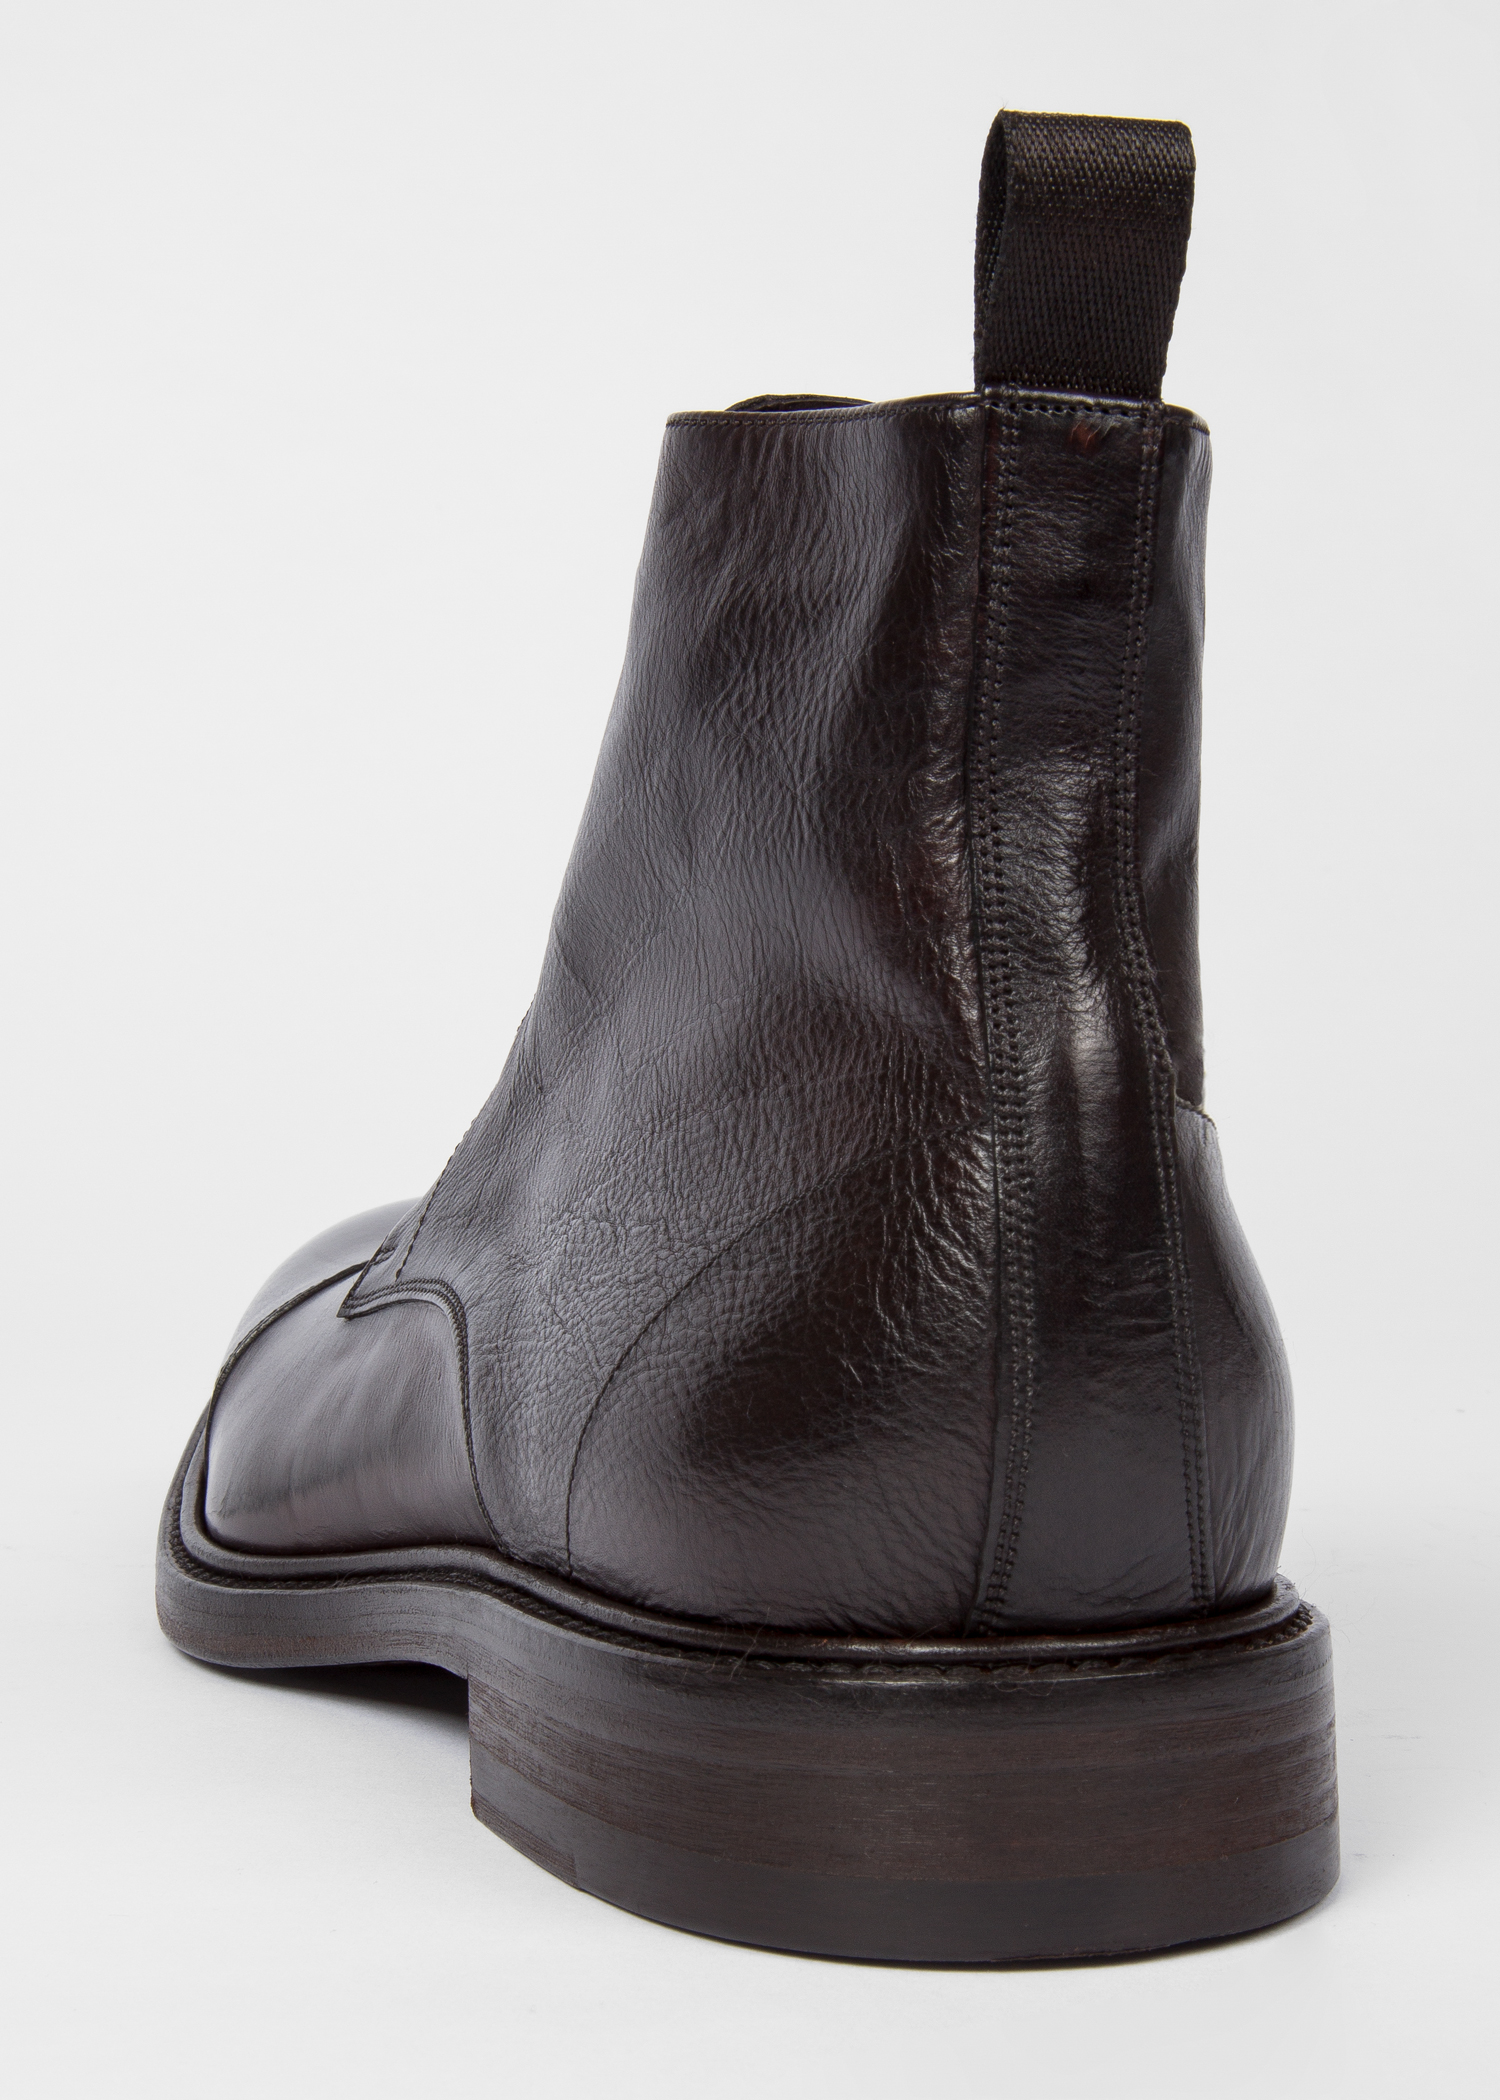 40a8daa7c Men's Dip-Dyed Dark Brown Calf Leather 'Jarman' Boots - Paul Smith US